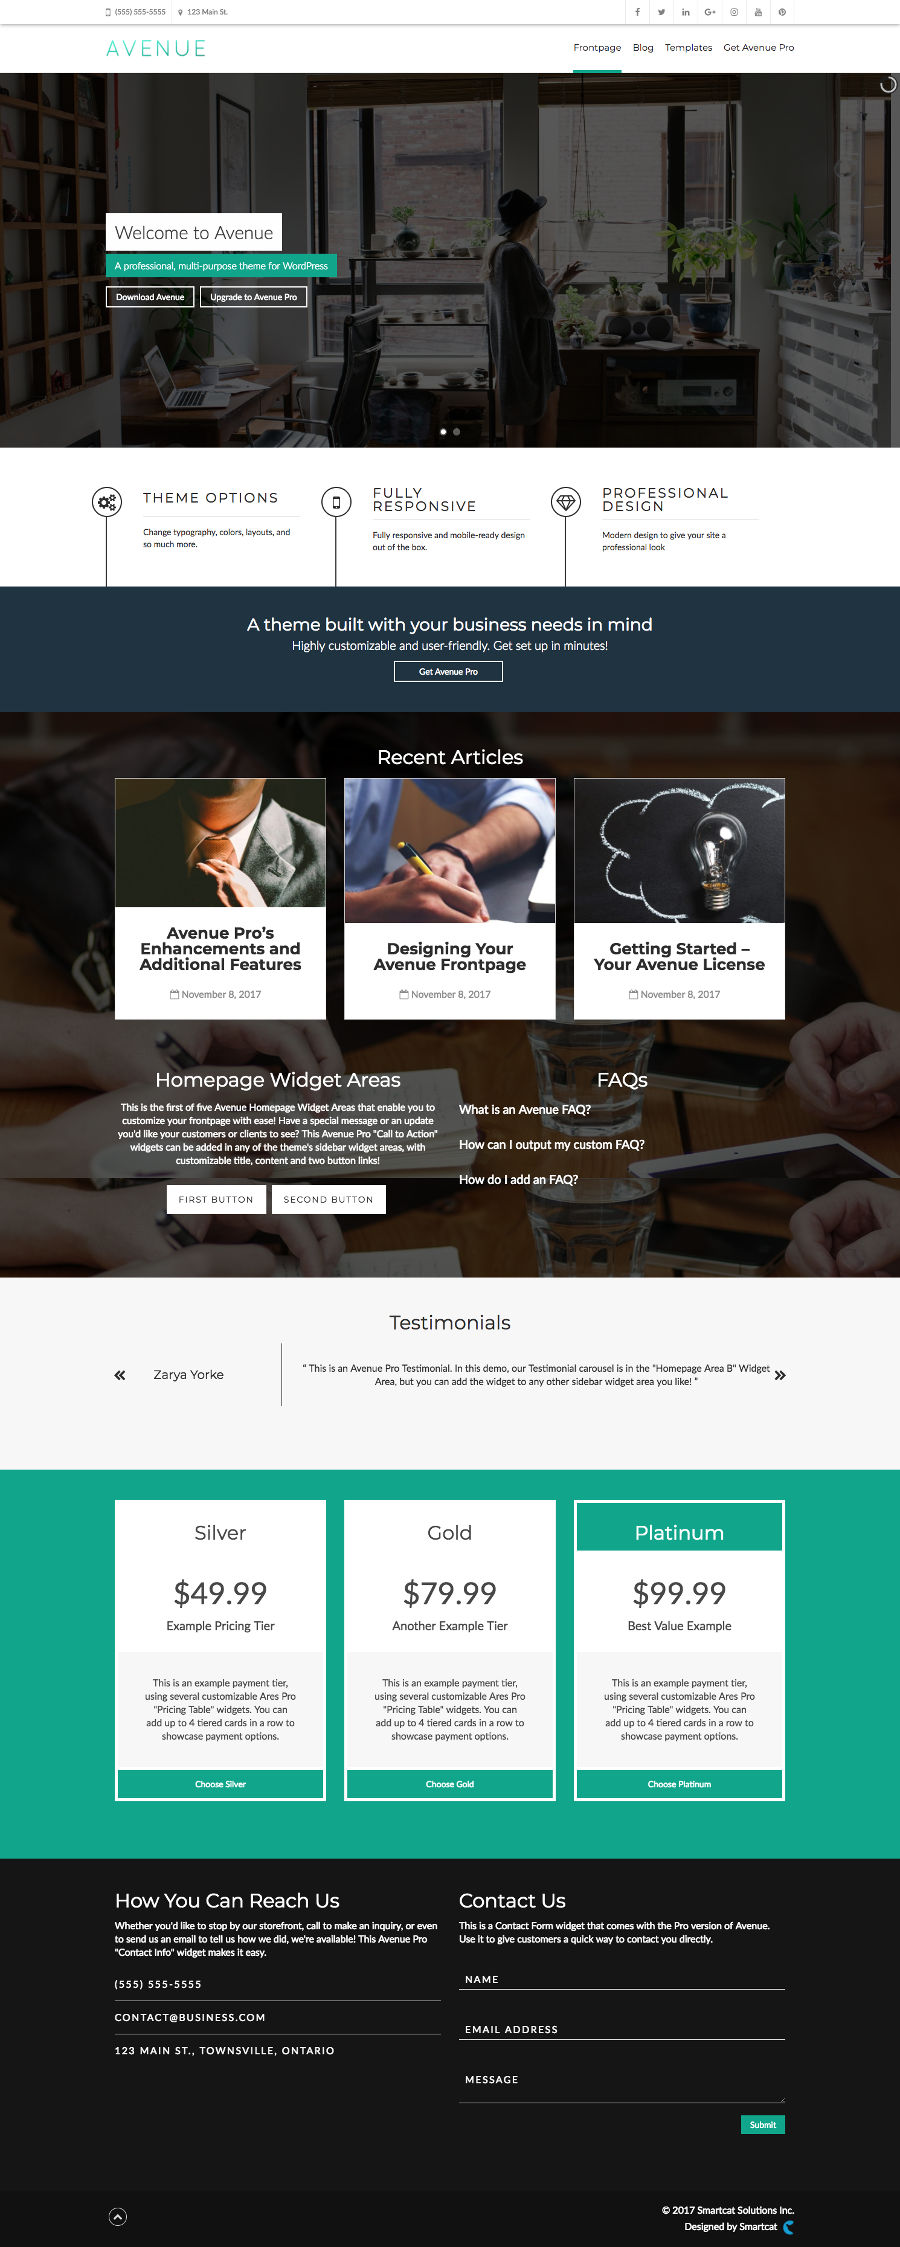 Avenue Pro - Smartcat - Expert WordPress, Shopify, E-Commerce & CRM ...